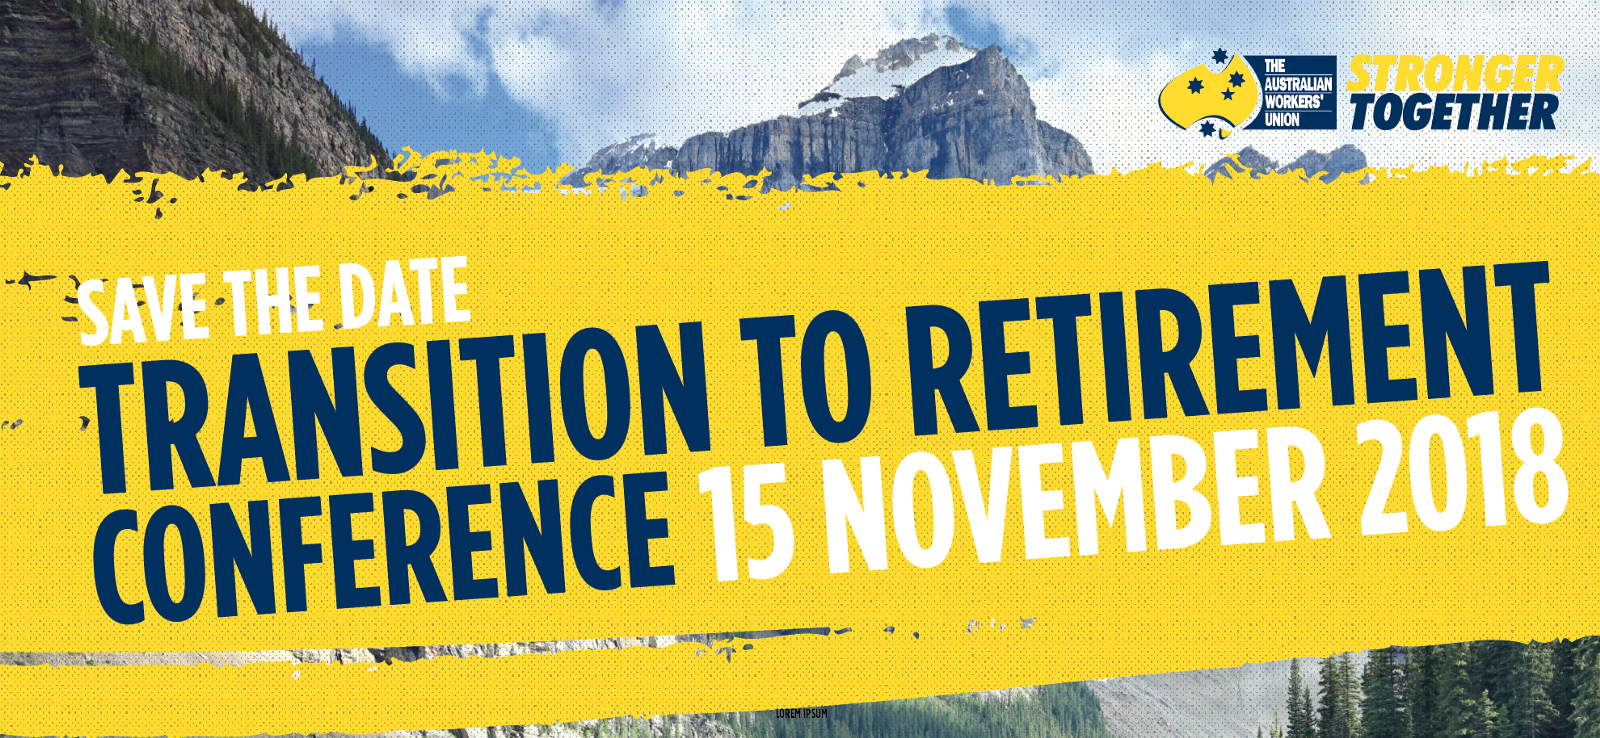 transition to retirement conference save the date